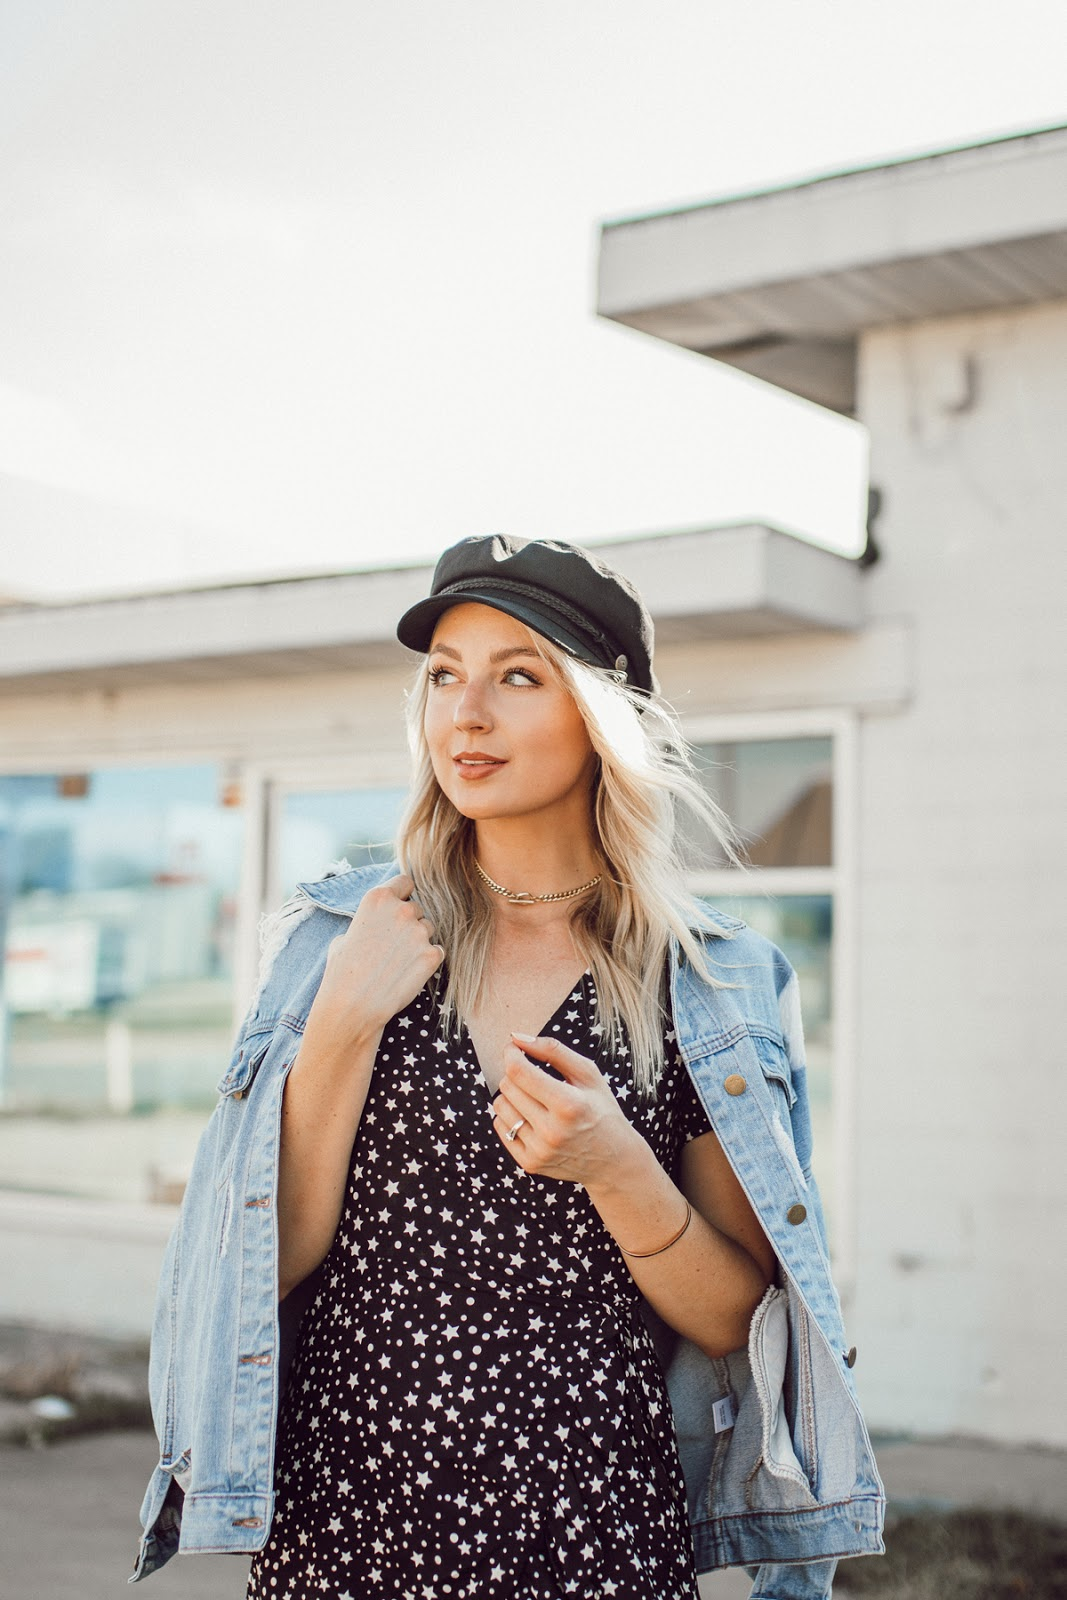 denim jacket + a captain's hat